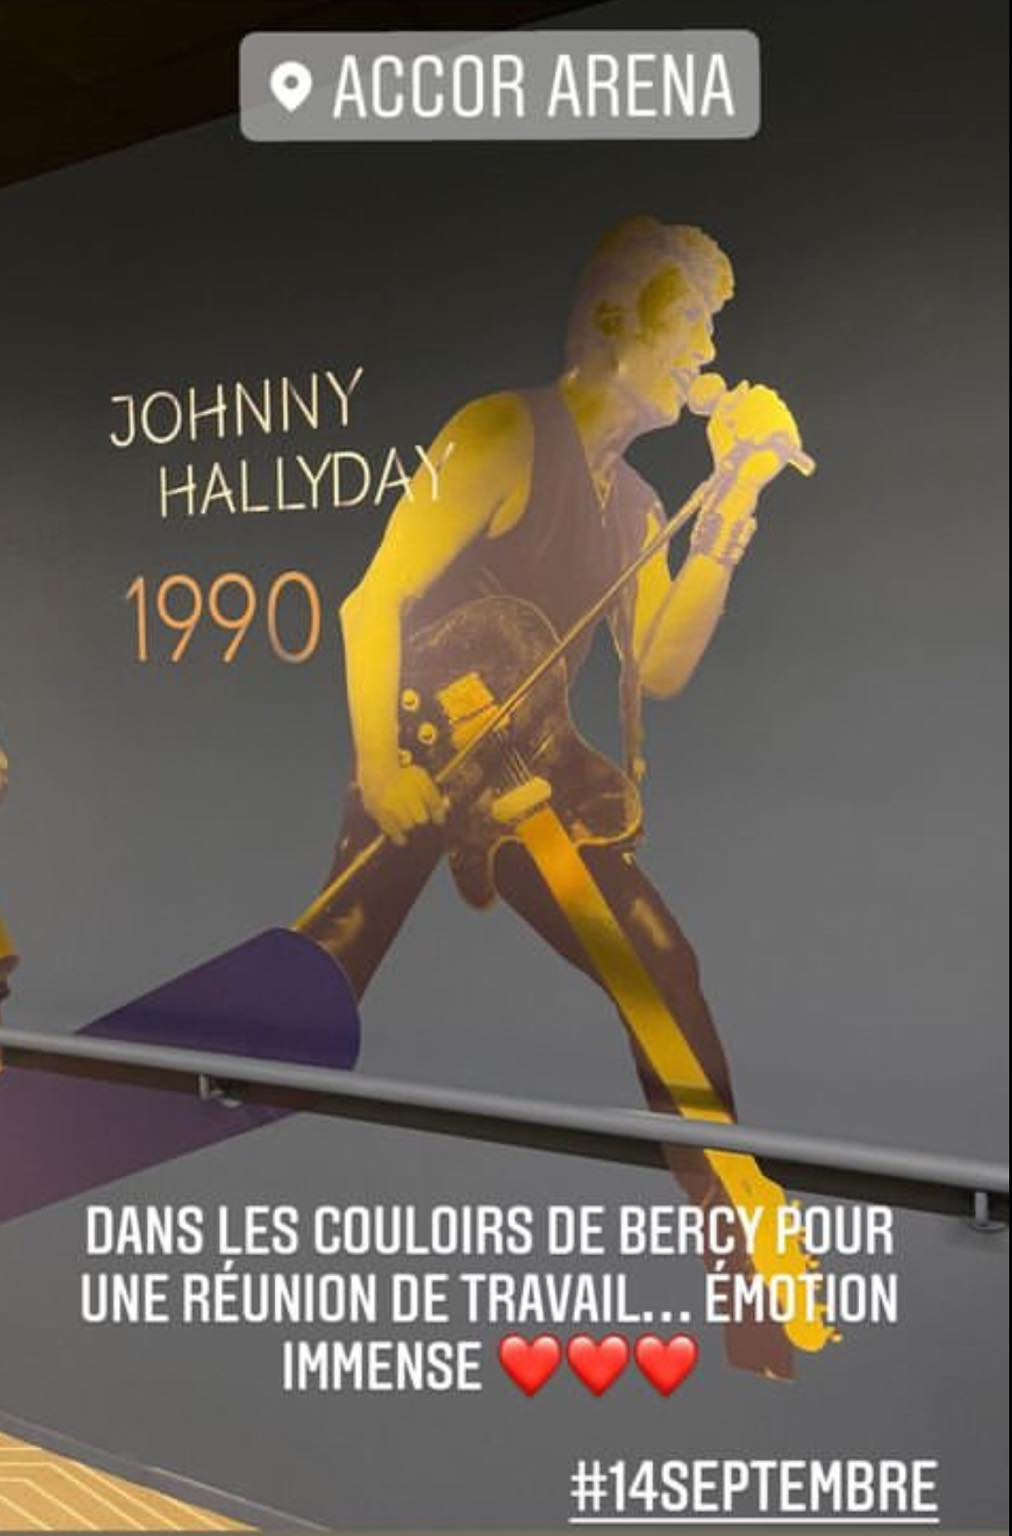 Bercy 14 septembre 2021 - Page 4 20911310